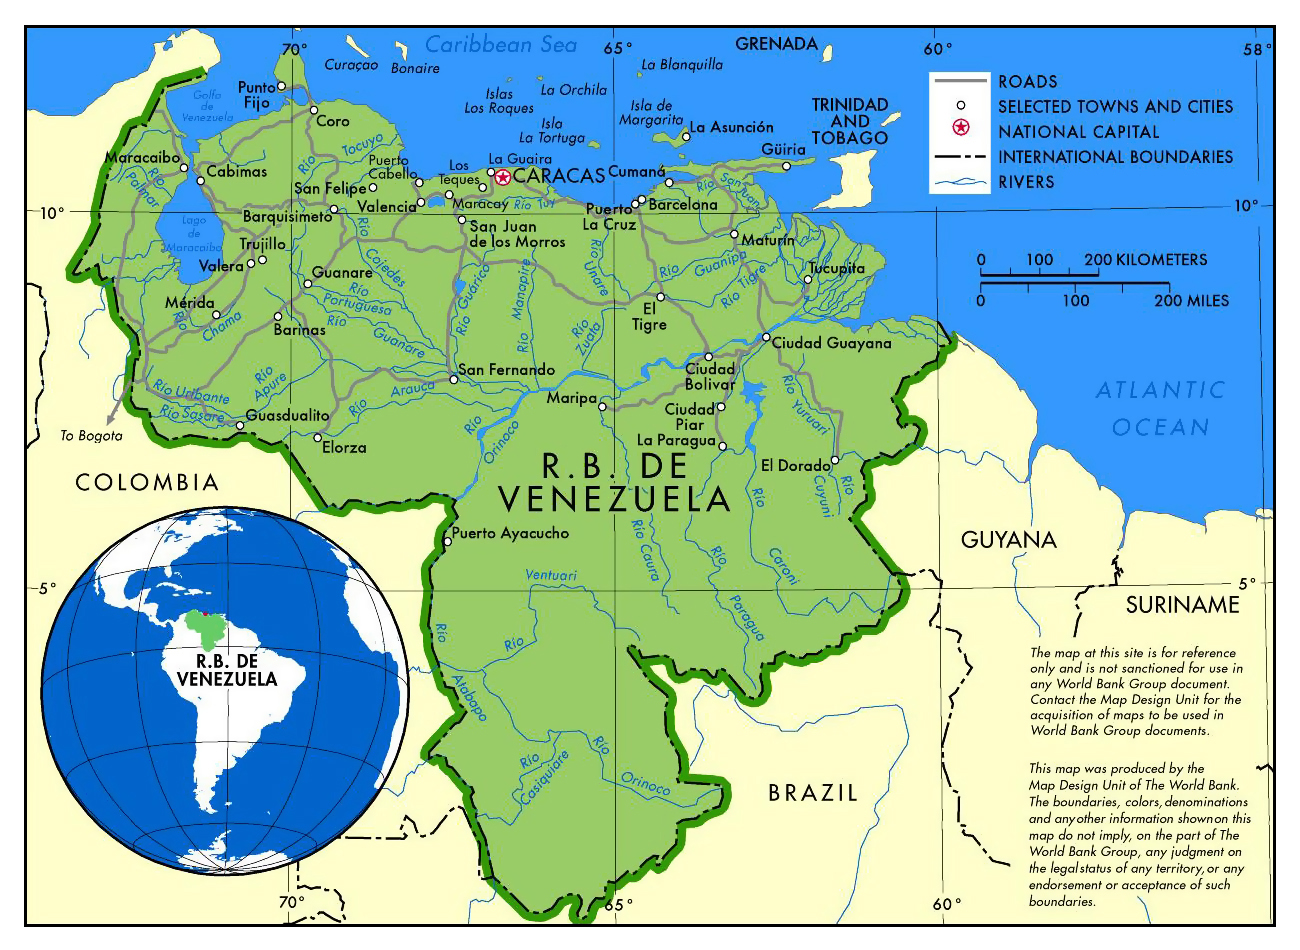 Large Political Map Of Venezuela With Roads And Major Cities - South america cities map